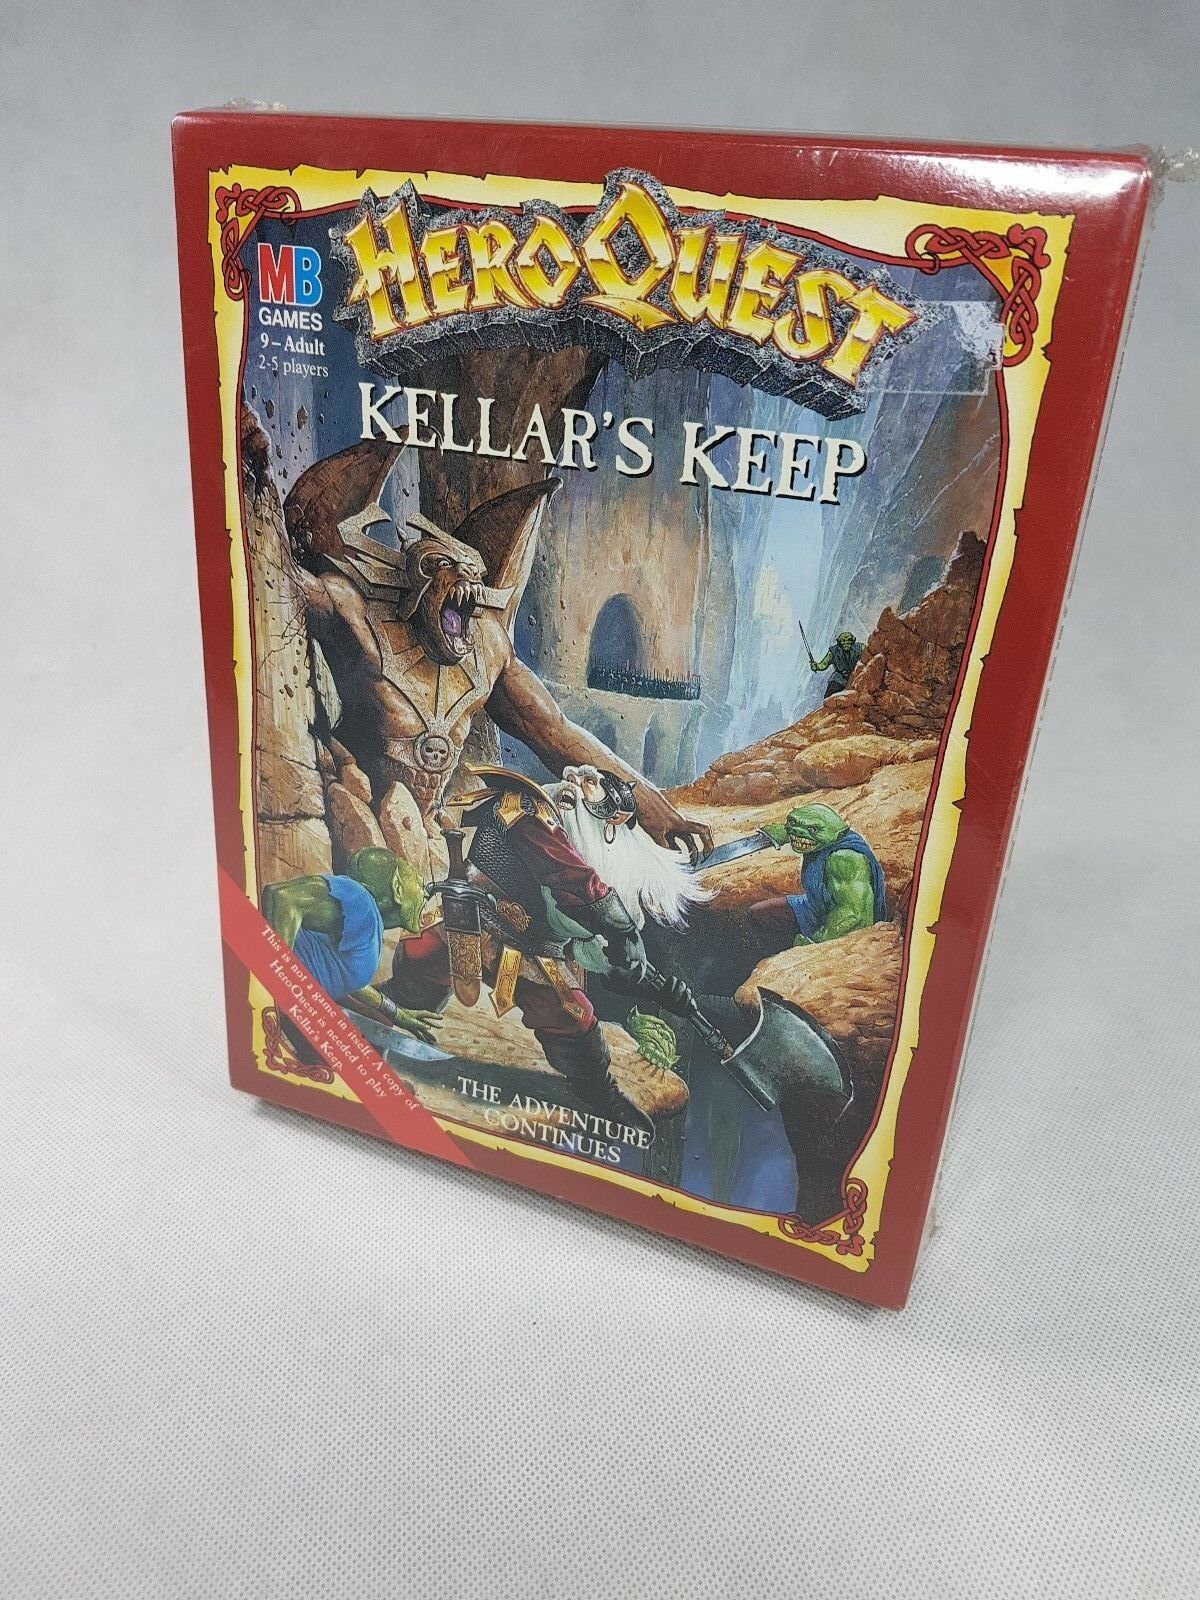 HeroQuest Kellar's Keep Expansion - BRAND NEW BNIB Still sealed [ENG, 1989]